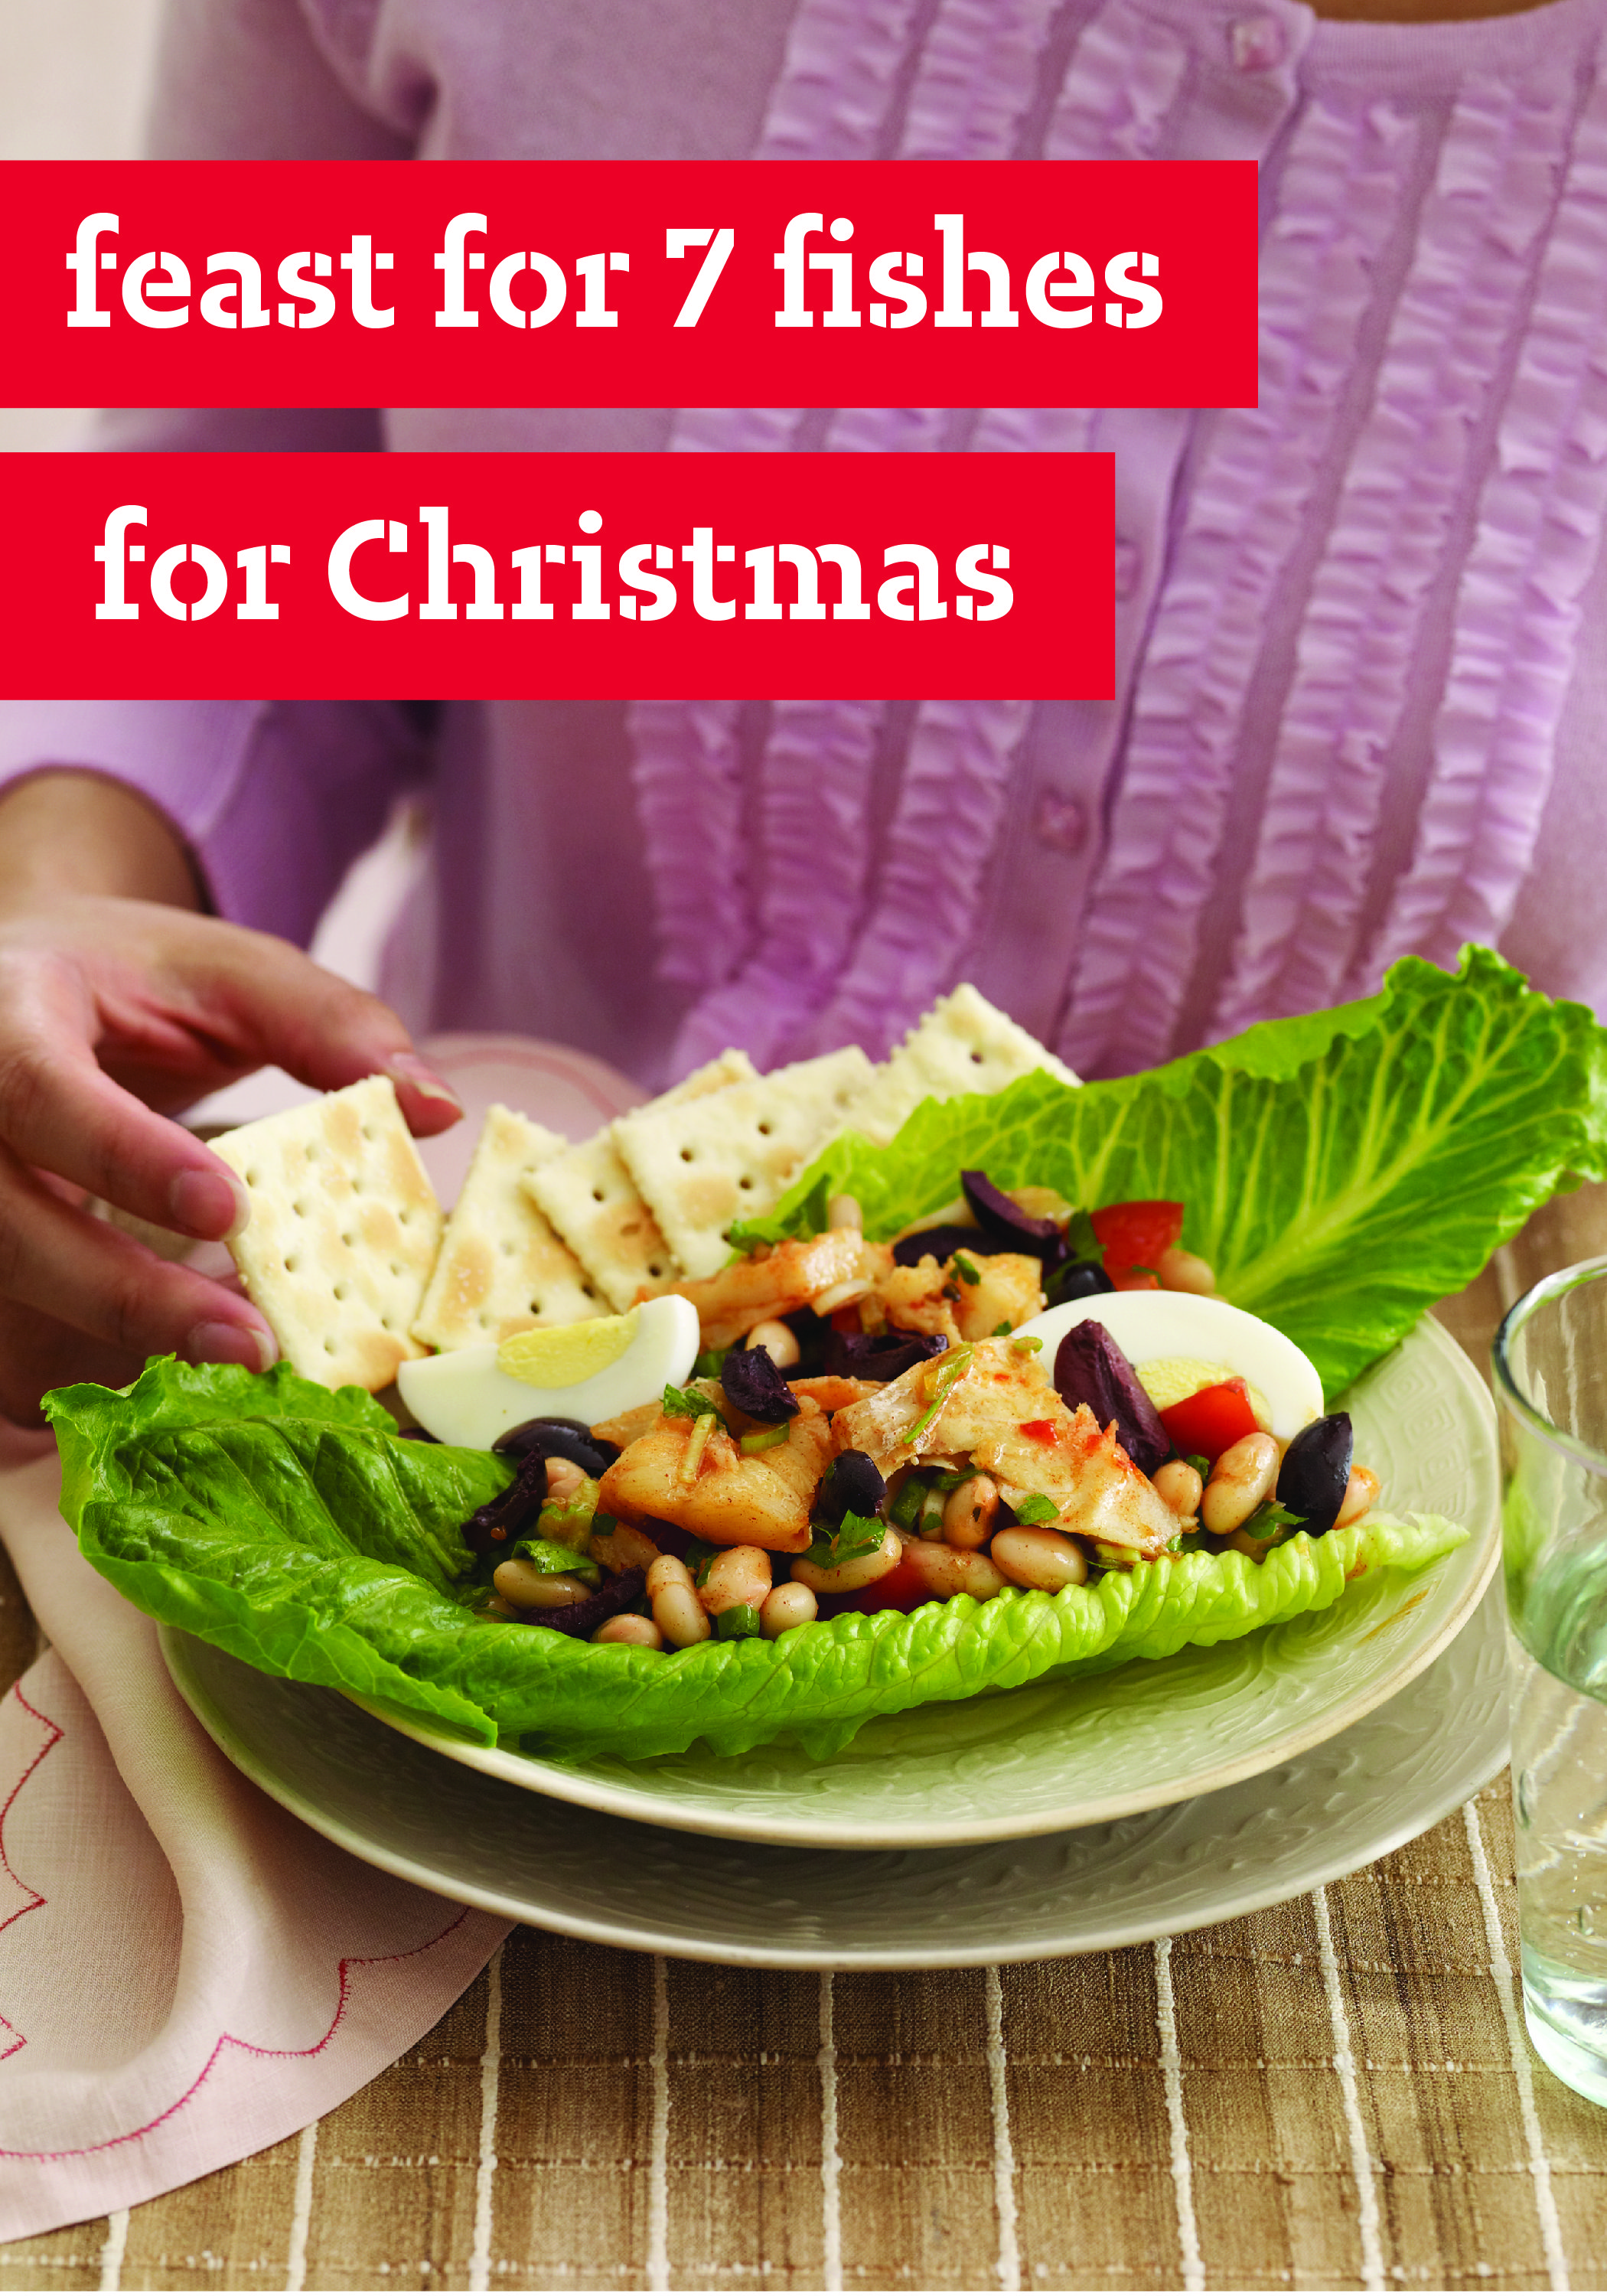 10 Feast Of The 7 Fishes For Christmas When It Comes To Italian Cuisine One Of The Most Delic Italian Recipes Christmas Dinner For A Crowd Pinterest Recipes